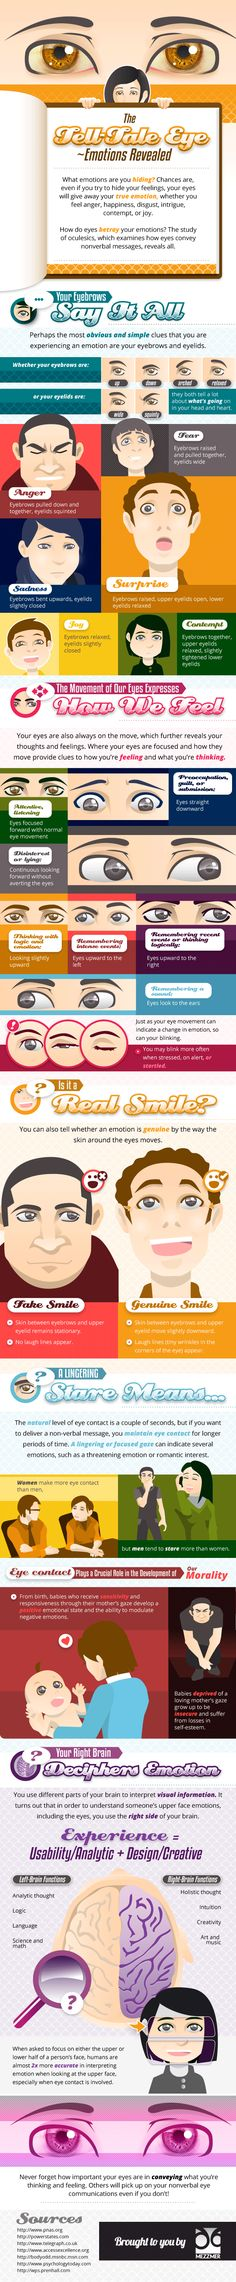 Emotions Revealed (Infographic)